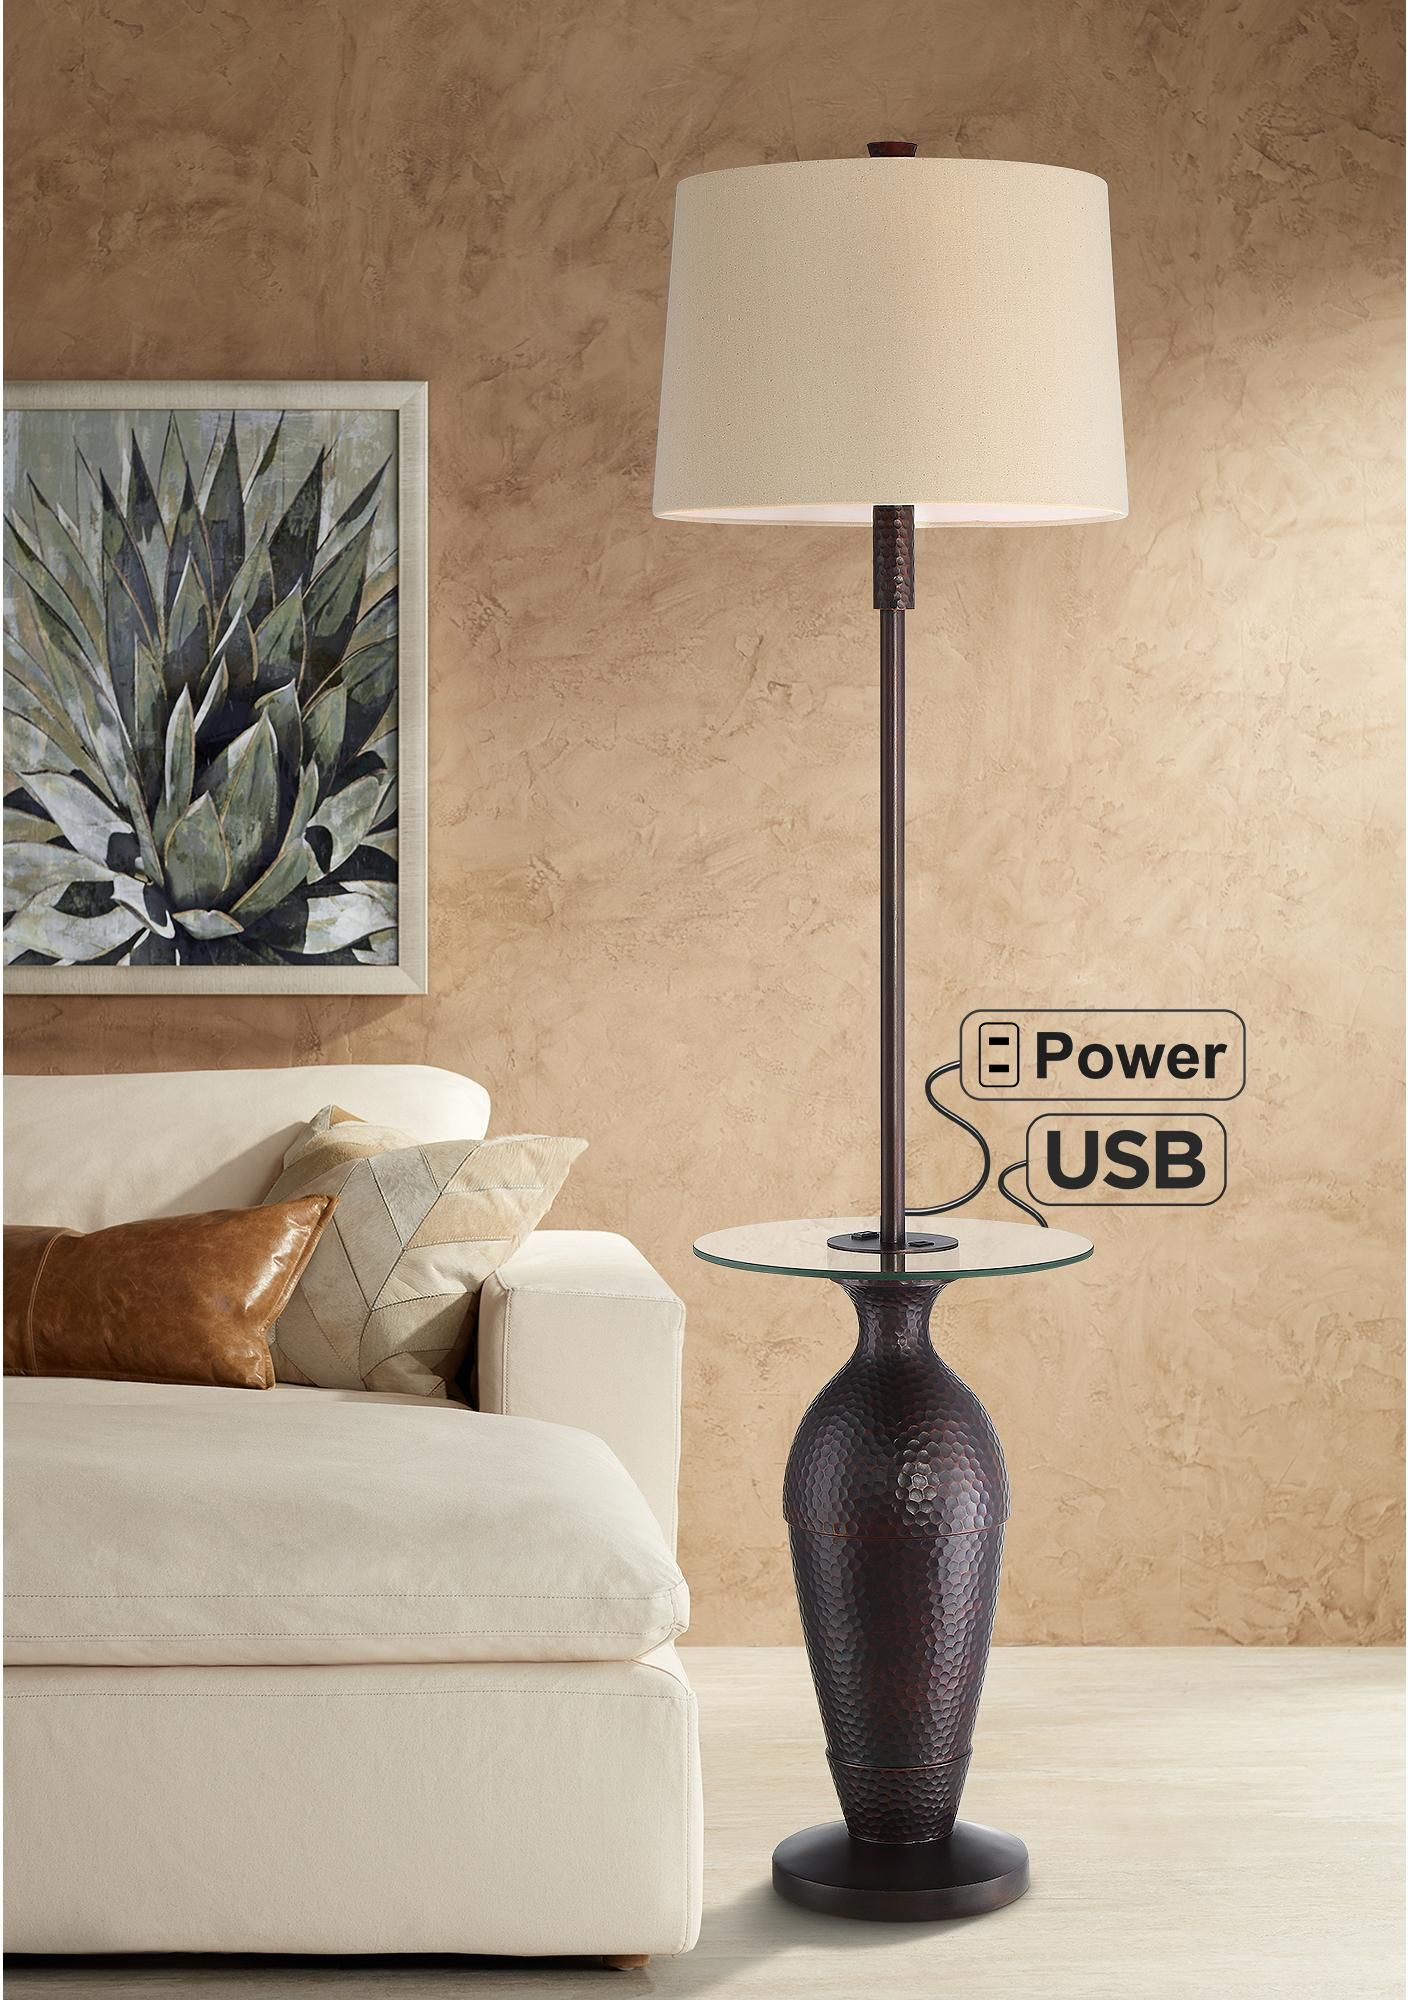 Floor Lamps Fallon Bronze Tray Table Floor Lamp With Usb Port And Outlet In 2020 Industrial Floor Lamps Floor Lamp Table Floor Lamp